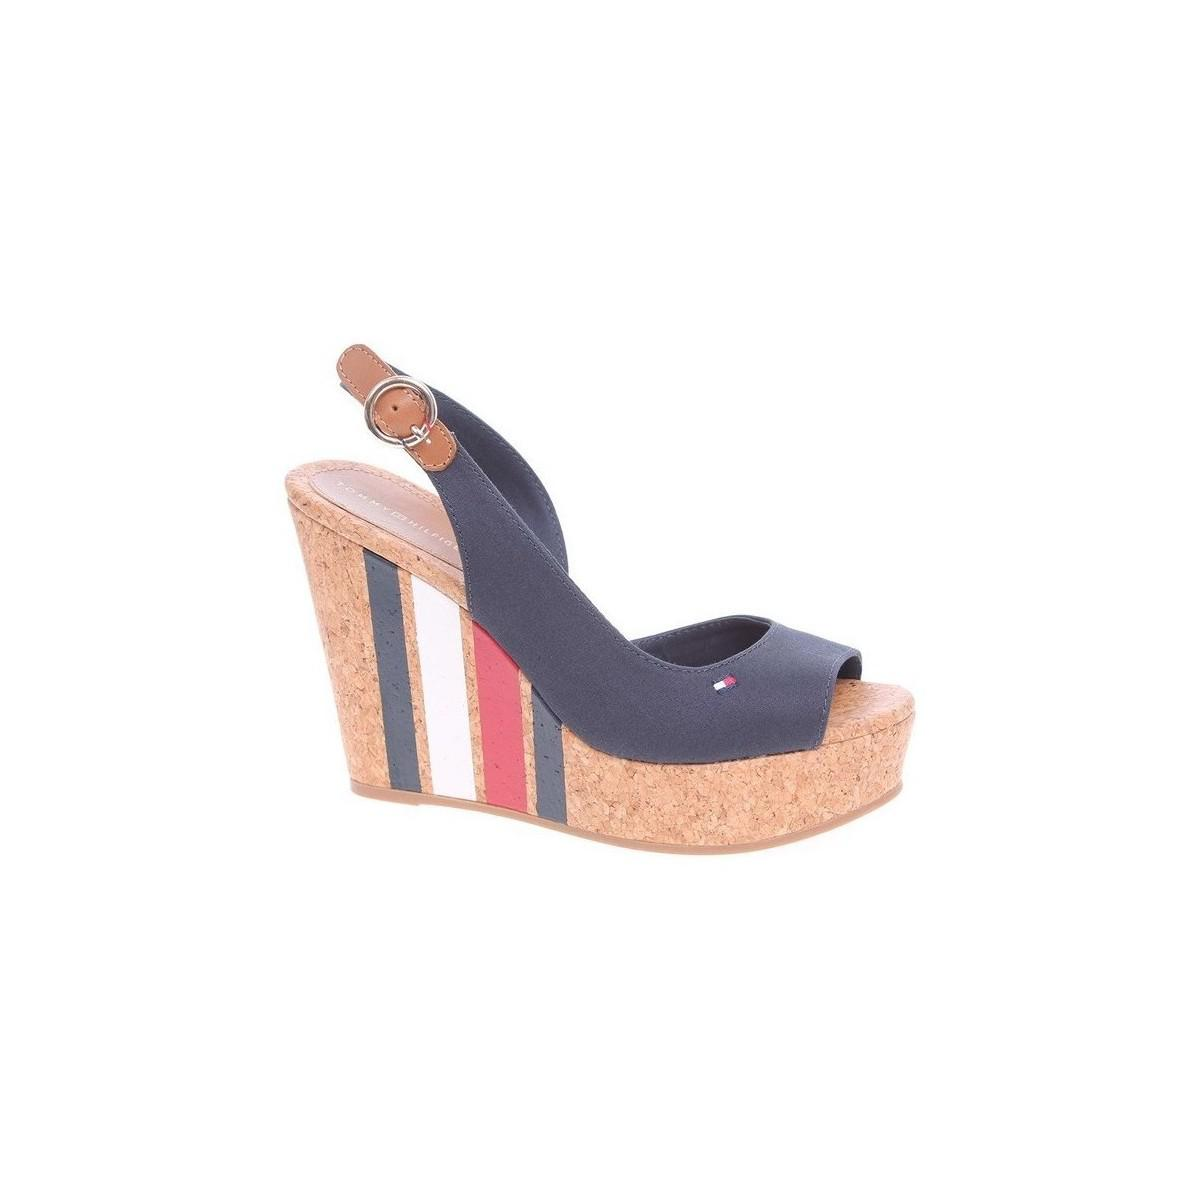 298dd1cabab ... Blue Wedge With Printed Stripes Midnight Women s Sandals In Multicolour  - Lyst. View fullscreen